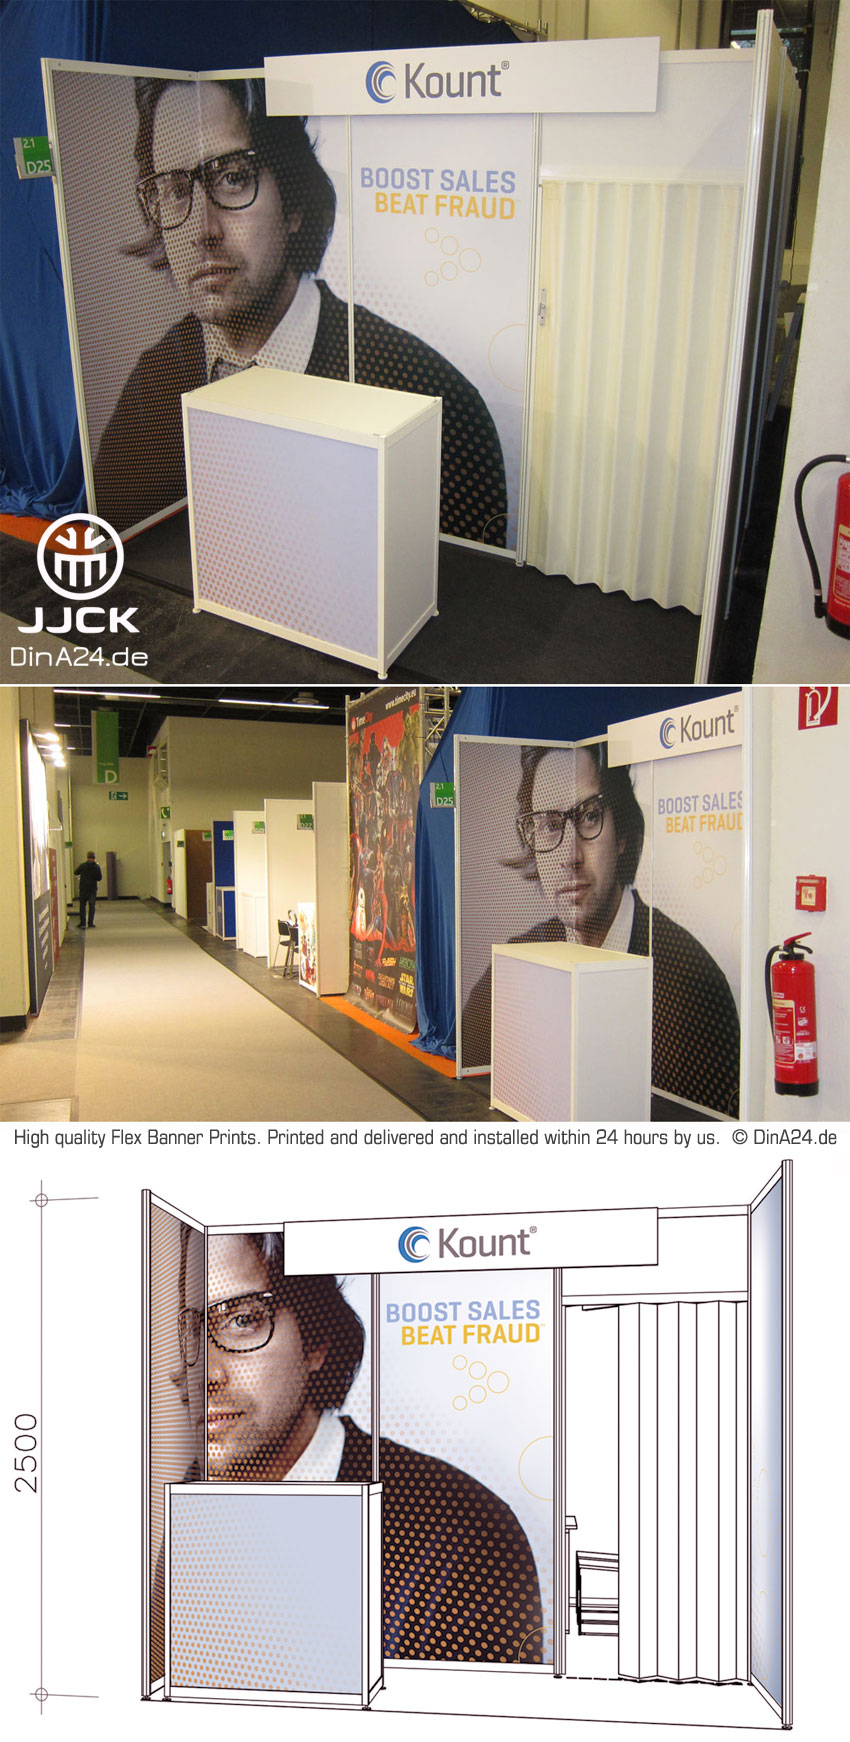 Flex-Banner-prints+installation_Kount_Gamescom_Cologne_Work_Sample_of_www.DinA24.de